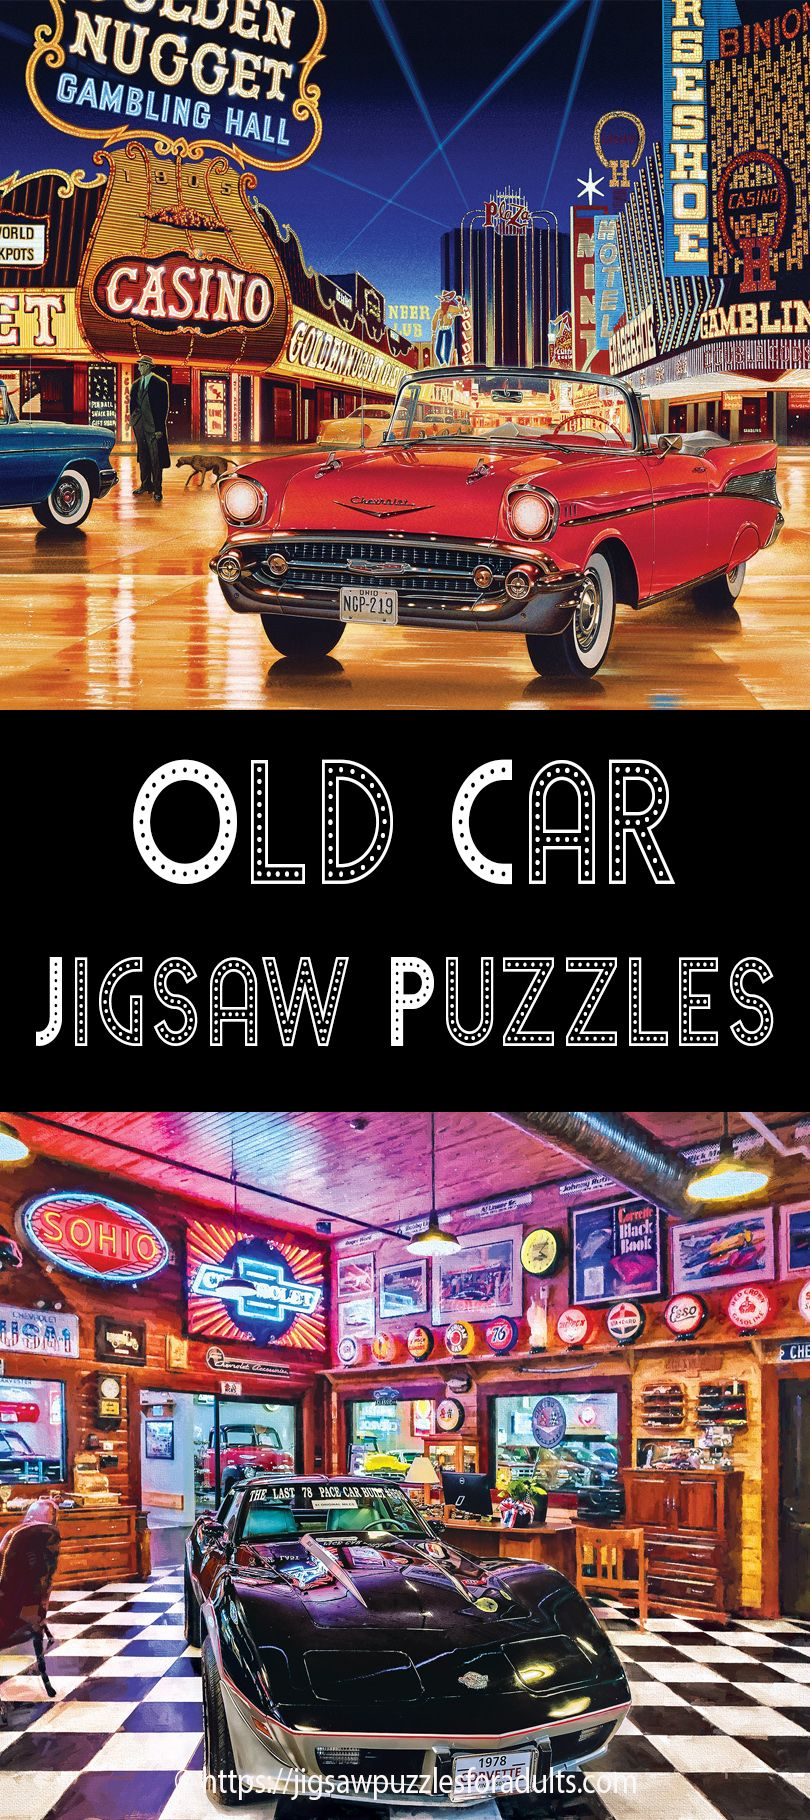 Jigsaw Puzzles Of Old Cars | Jigsaw puzzles | Jigsaw puzzles